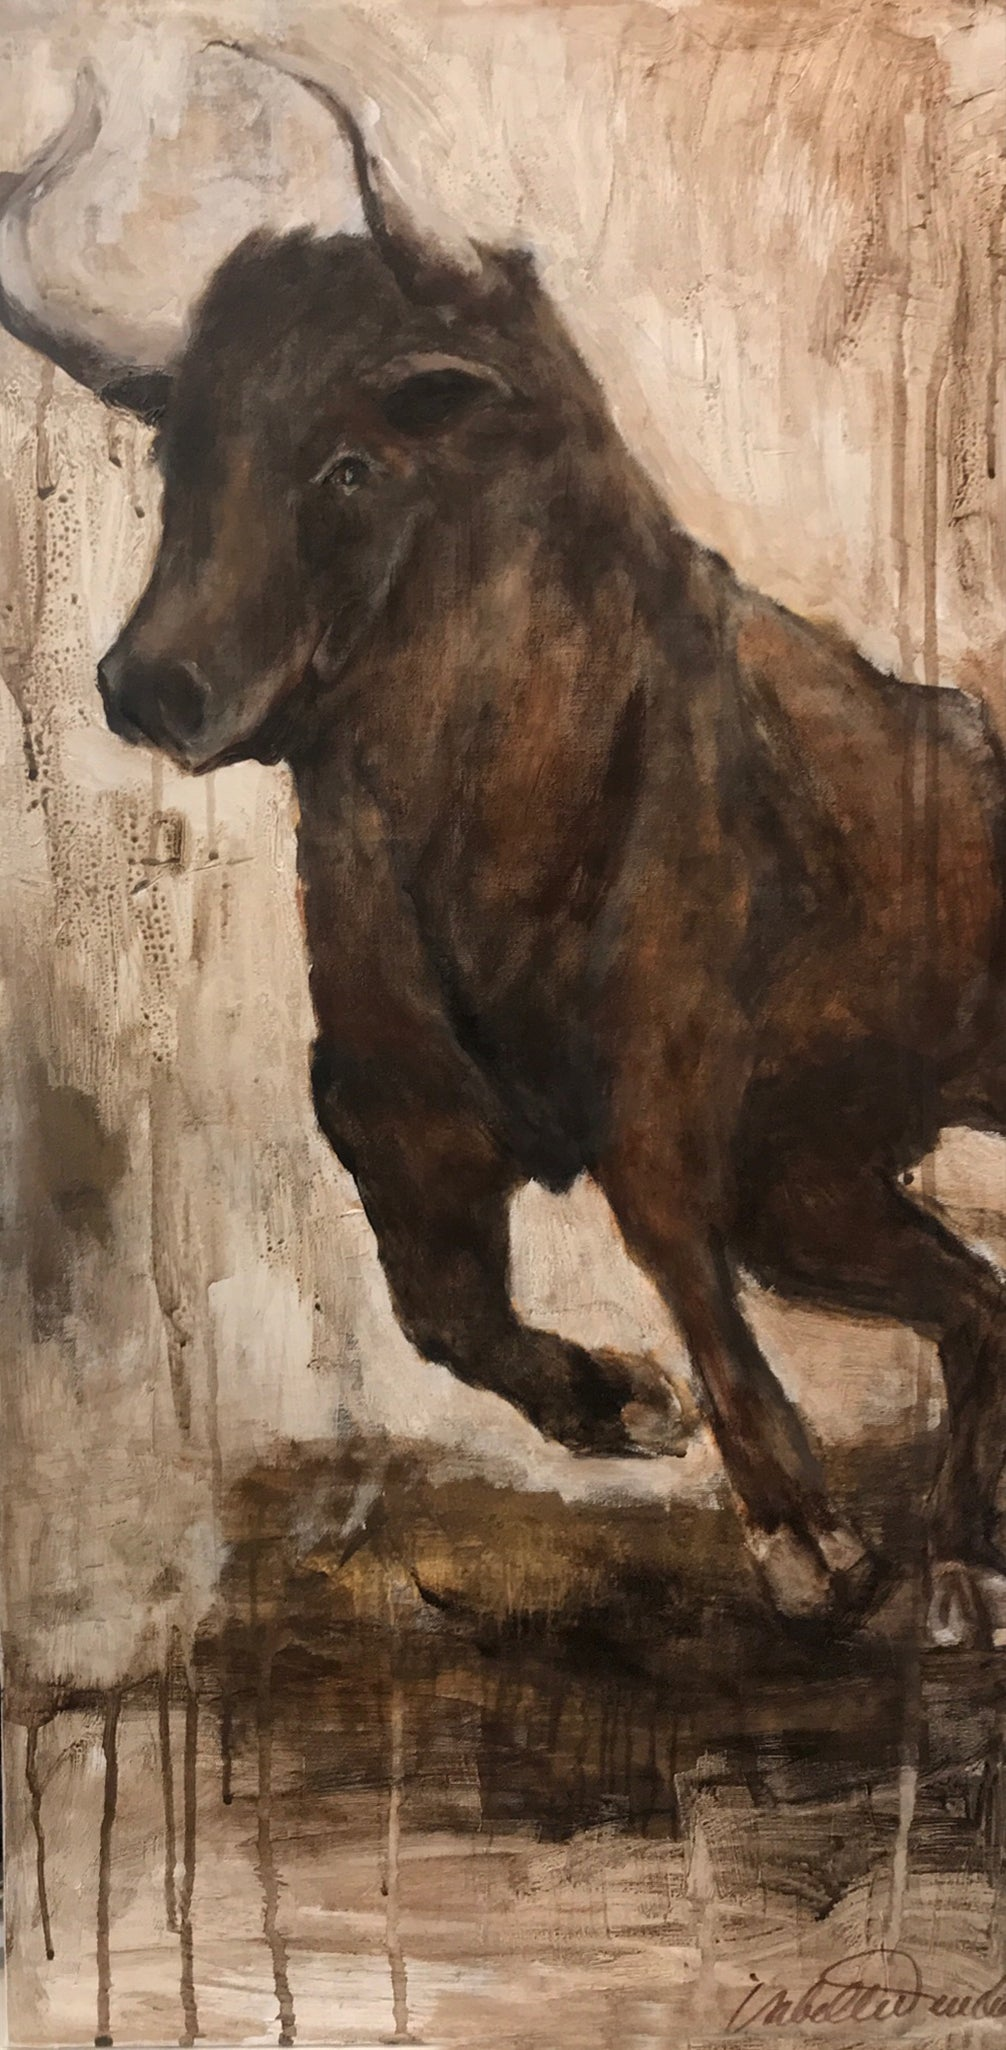 Samson the bull's partner Delilah, in muted natural tones, sweet and full of life. A fantastic piece for a wall and space, perhaps with her pal Samson!